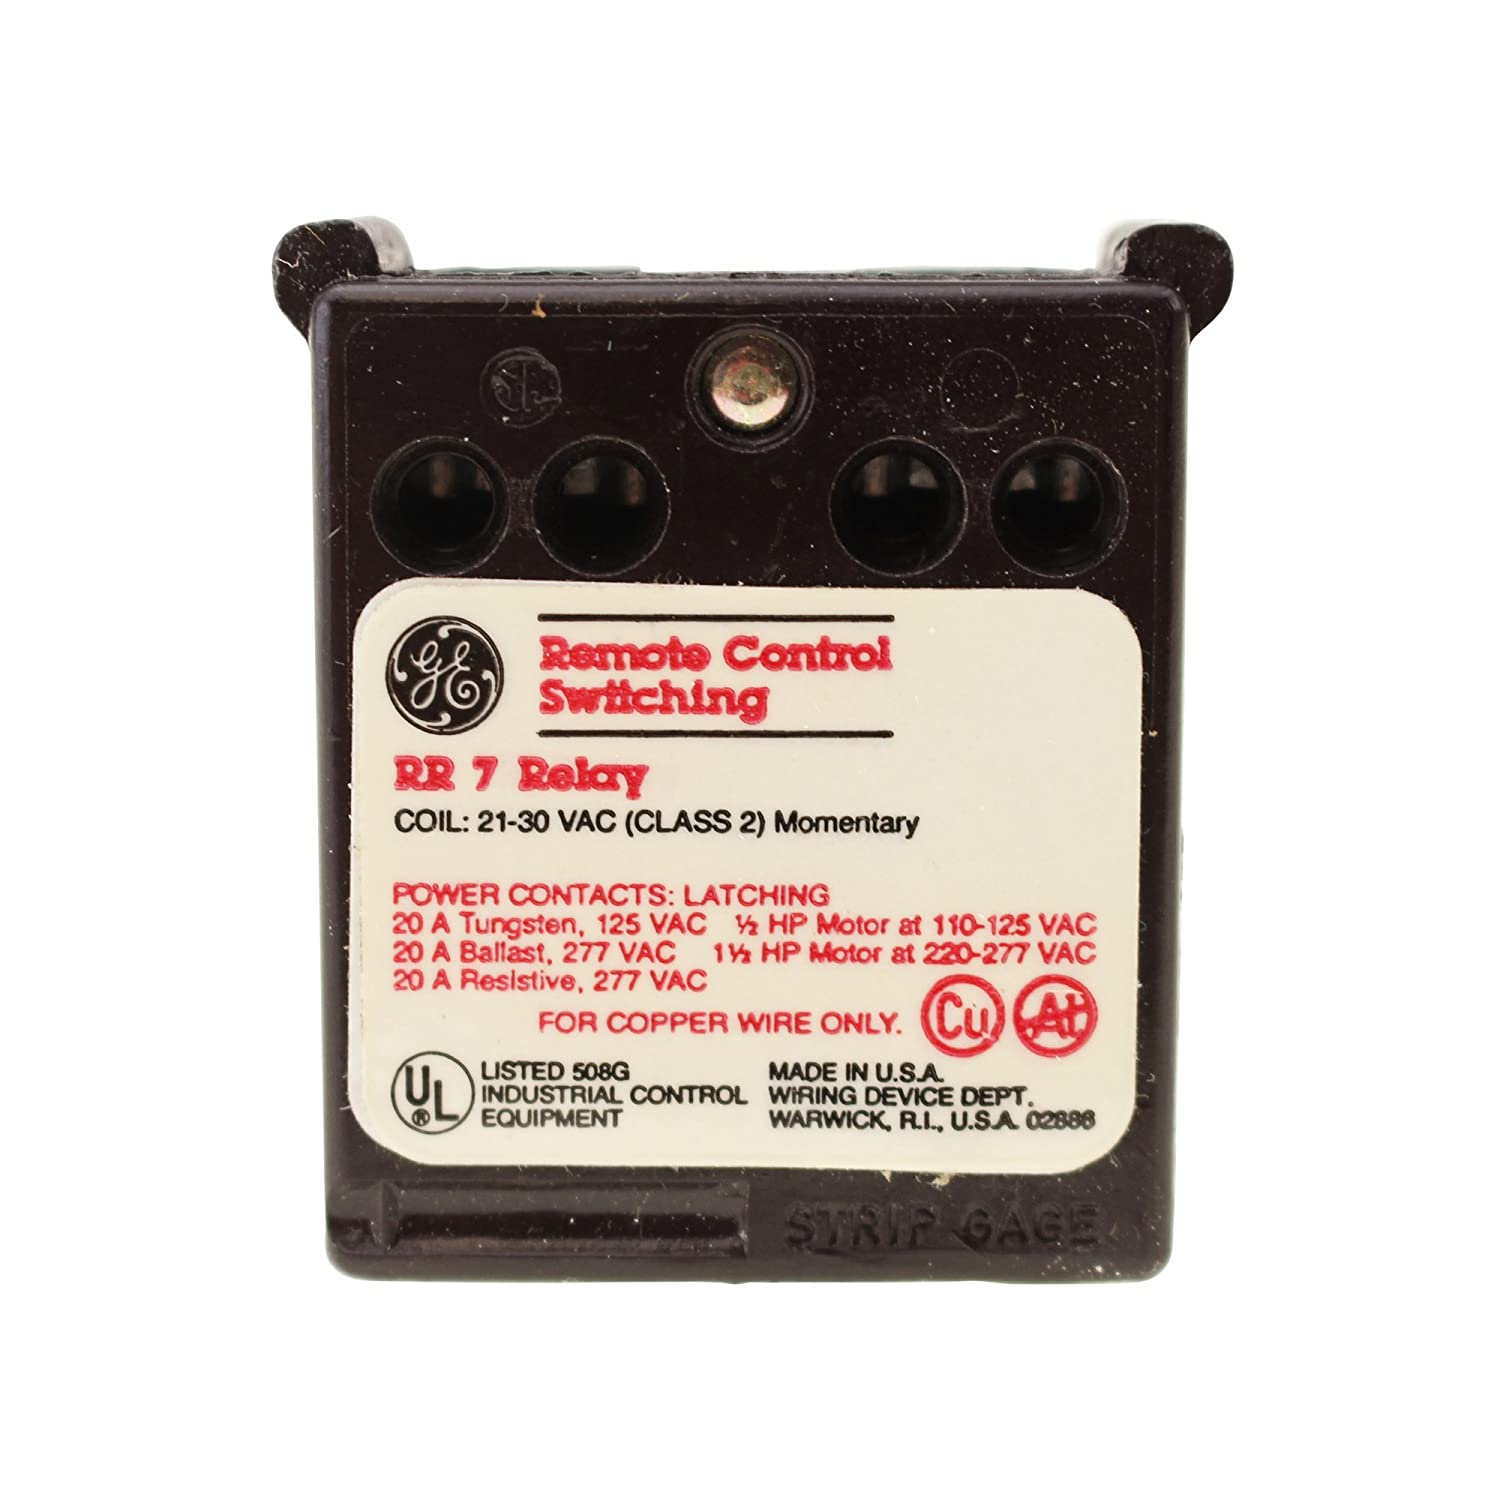 Ge Rr3 Relay Wiring Diagram | Wiring Liry Ge Rr Relay Wiring Diagram on